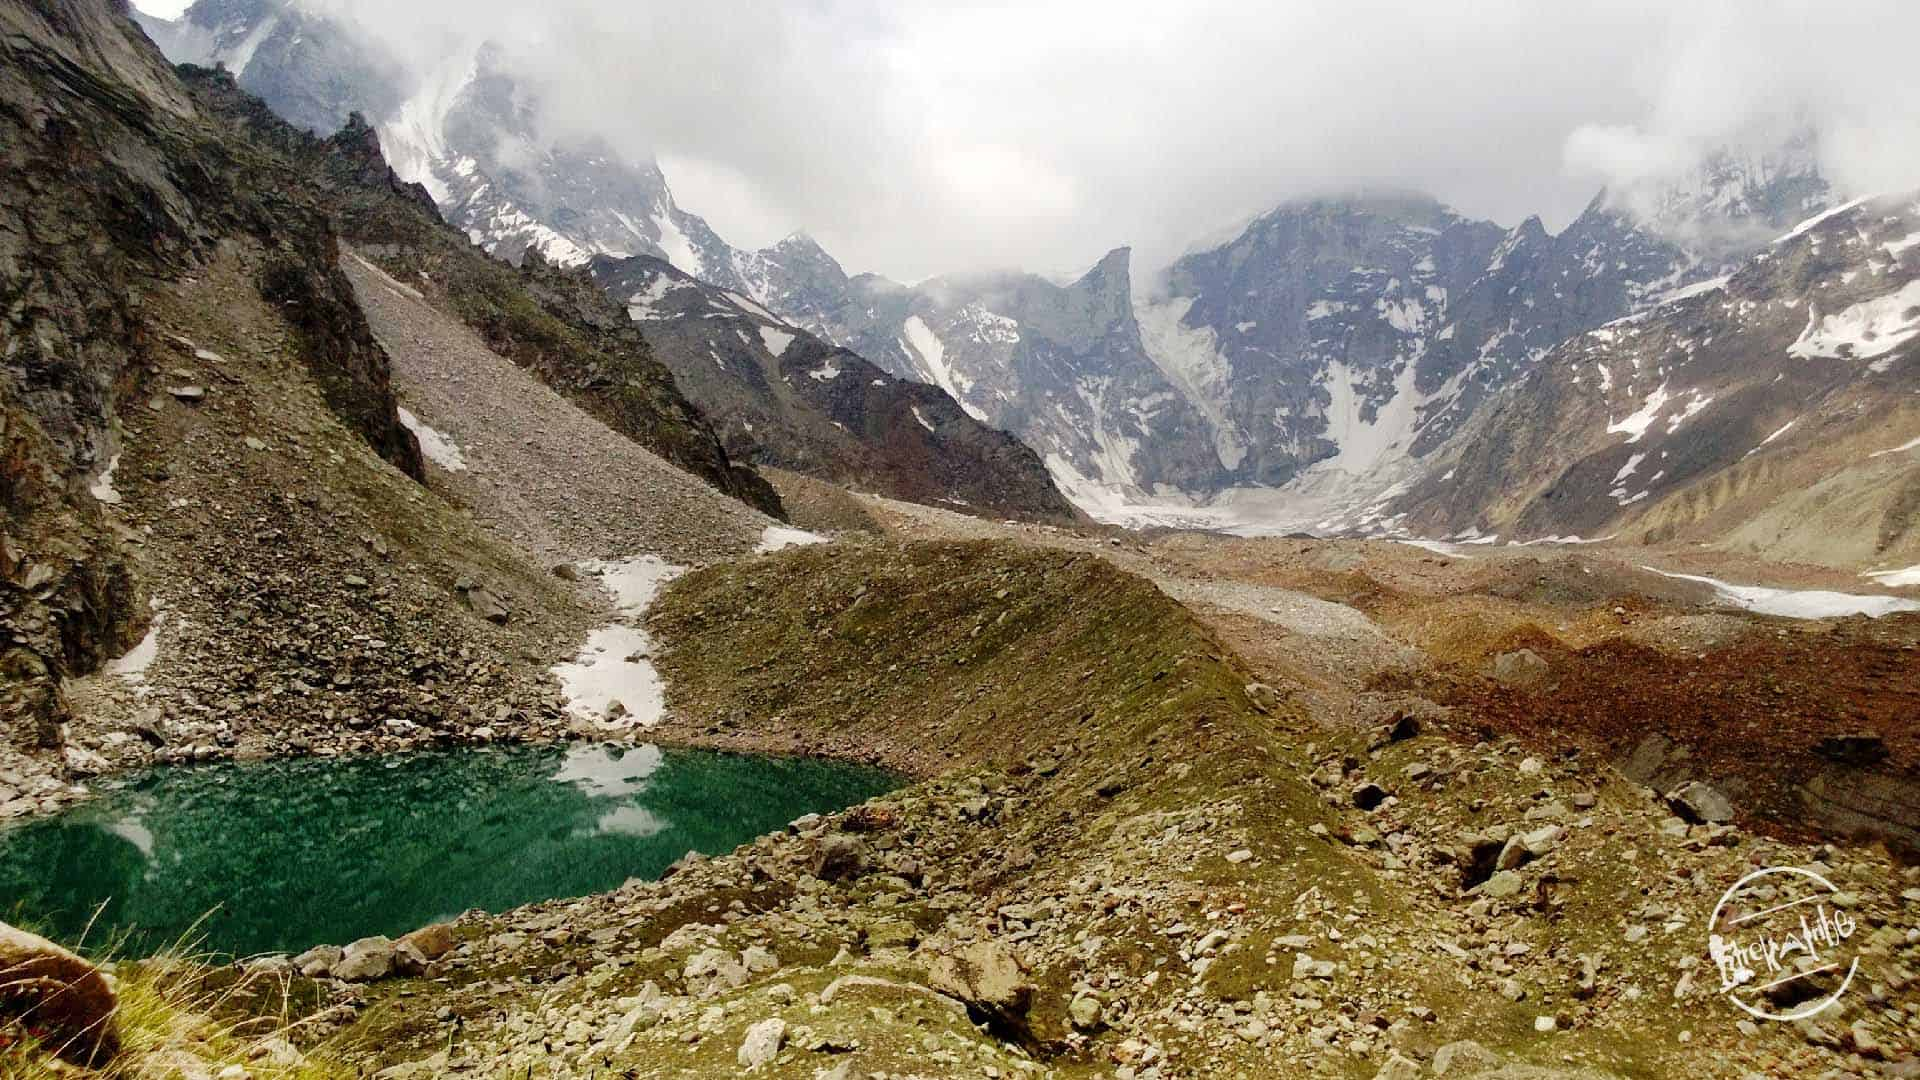 Trek to neekanth mahadev lake